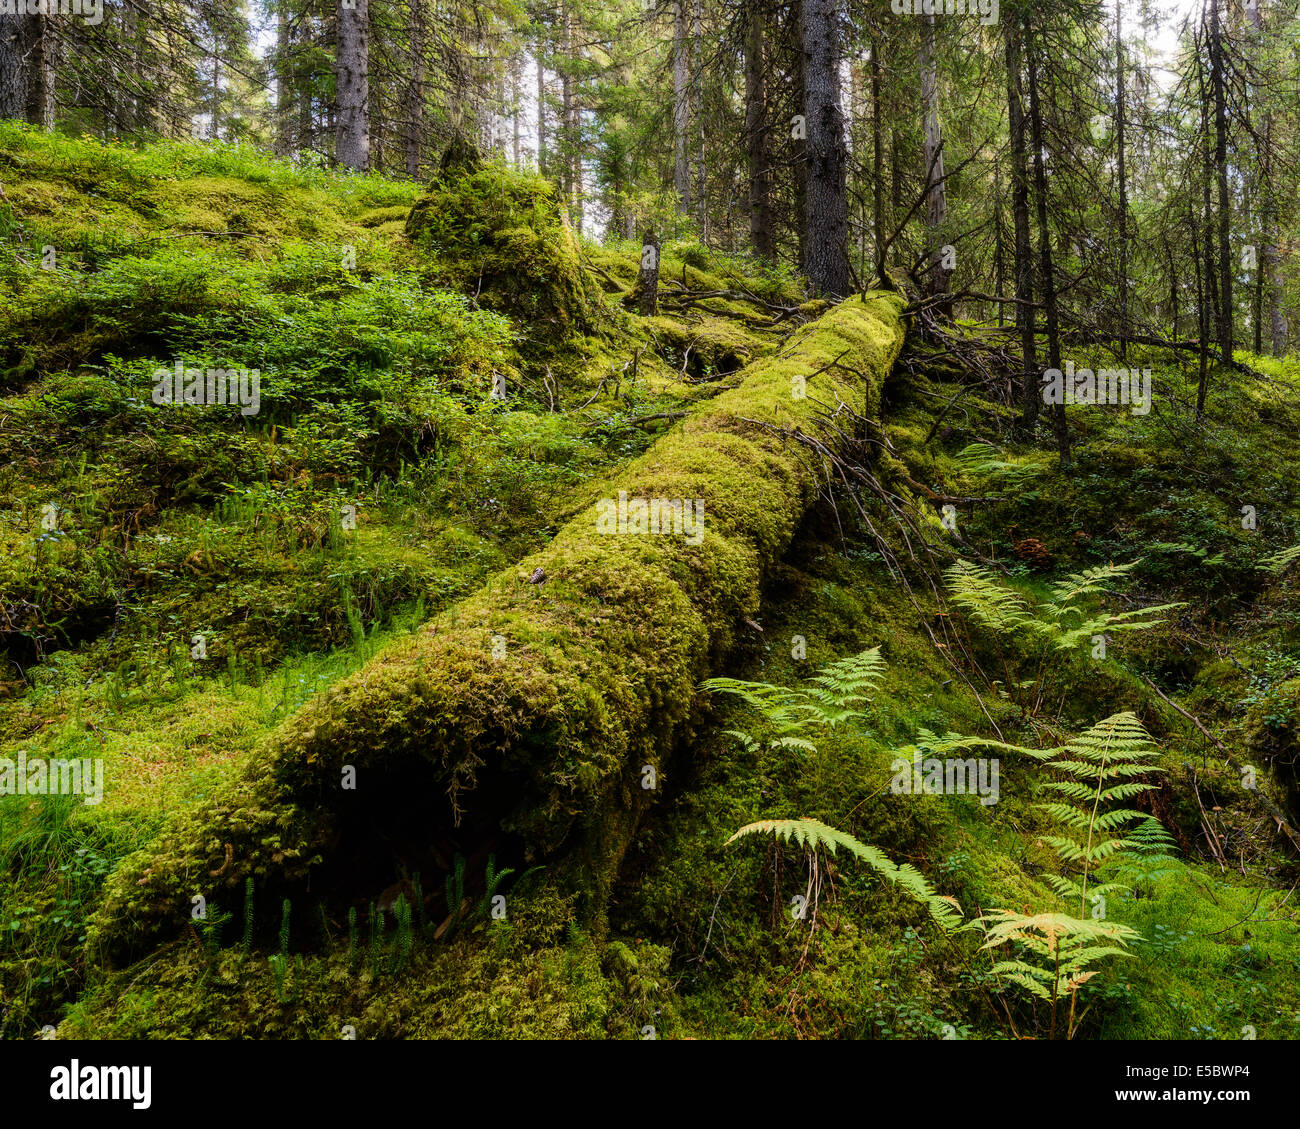 Fallen tree covered with moss in forest - Stock Image